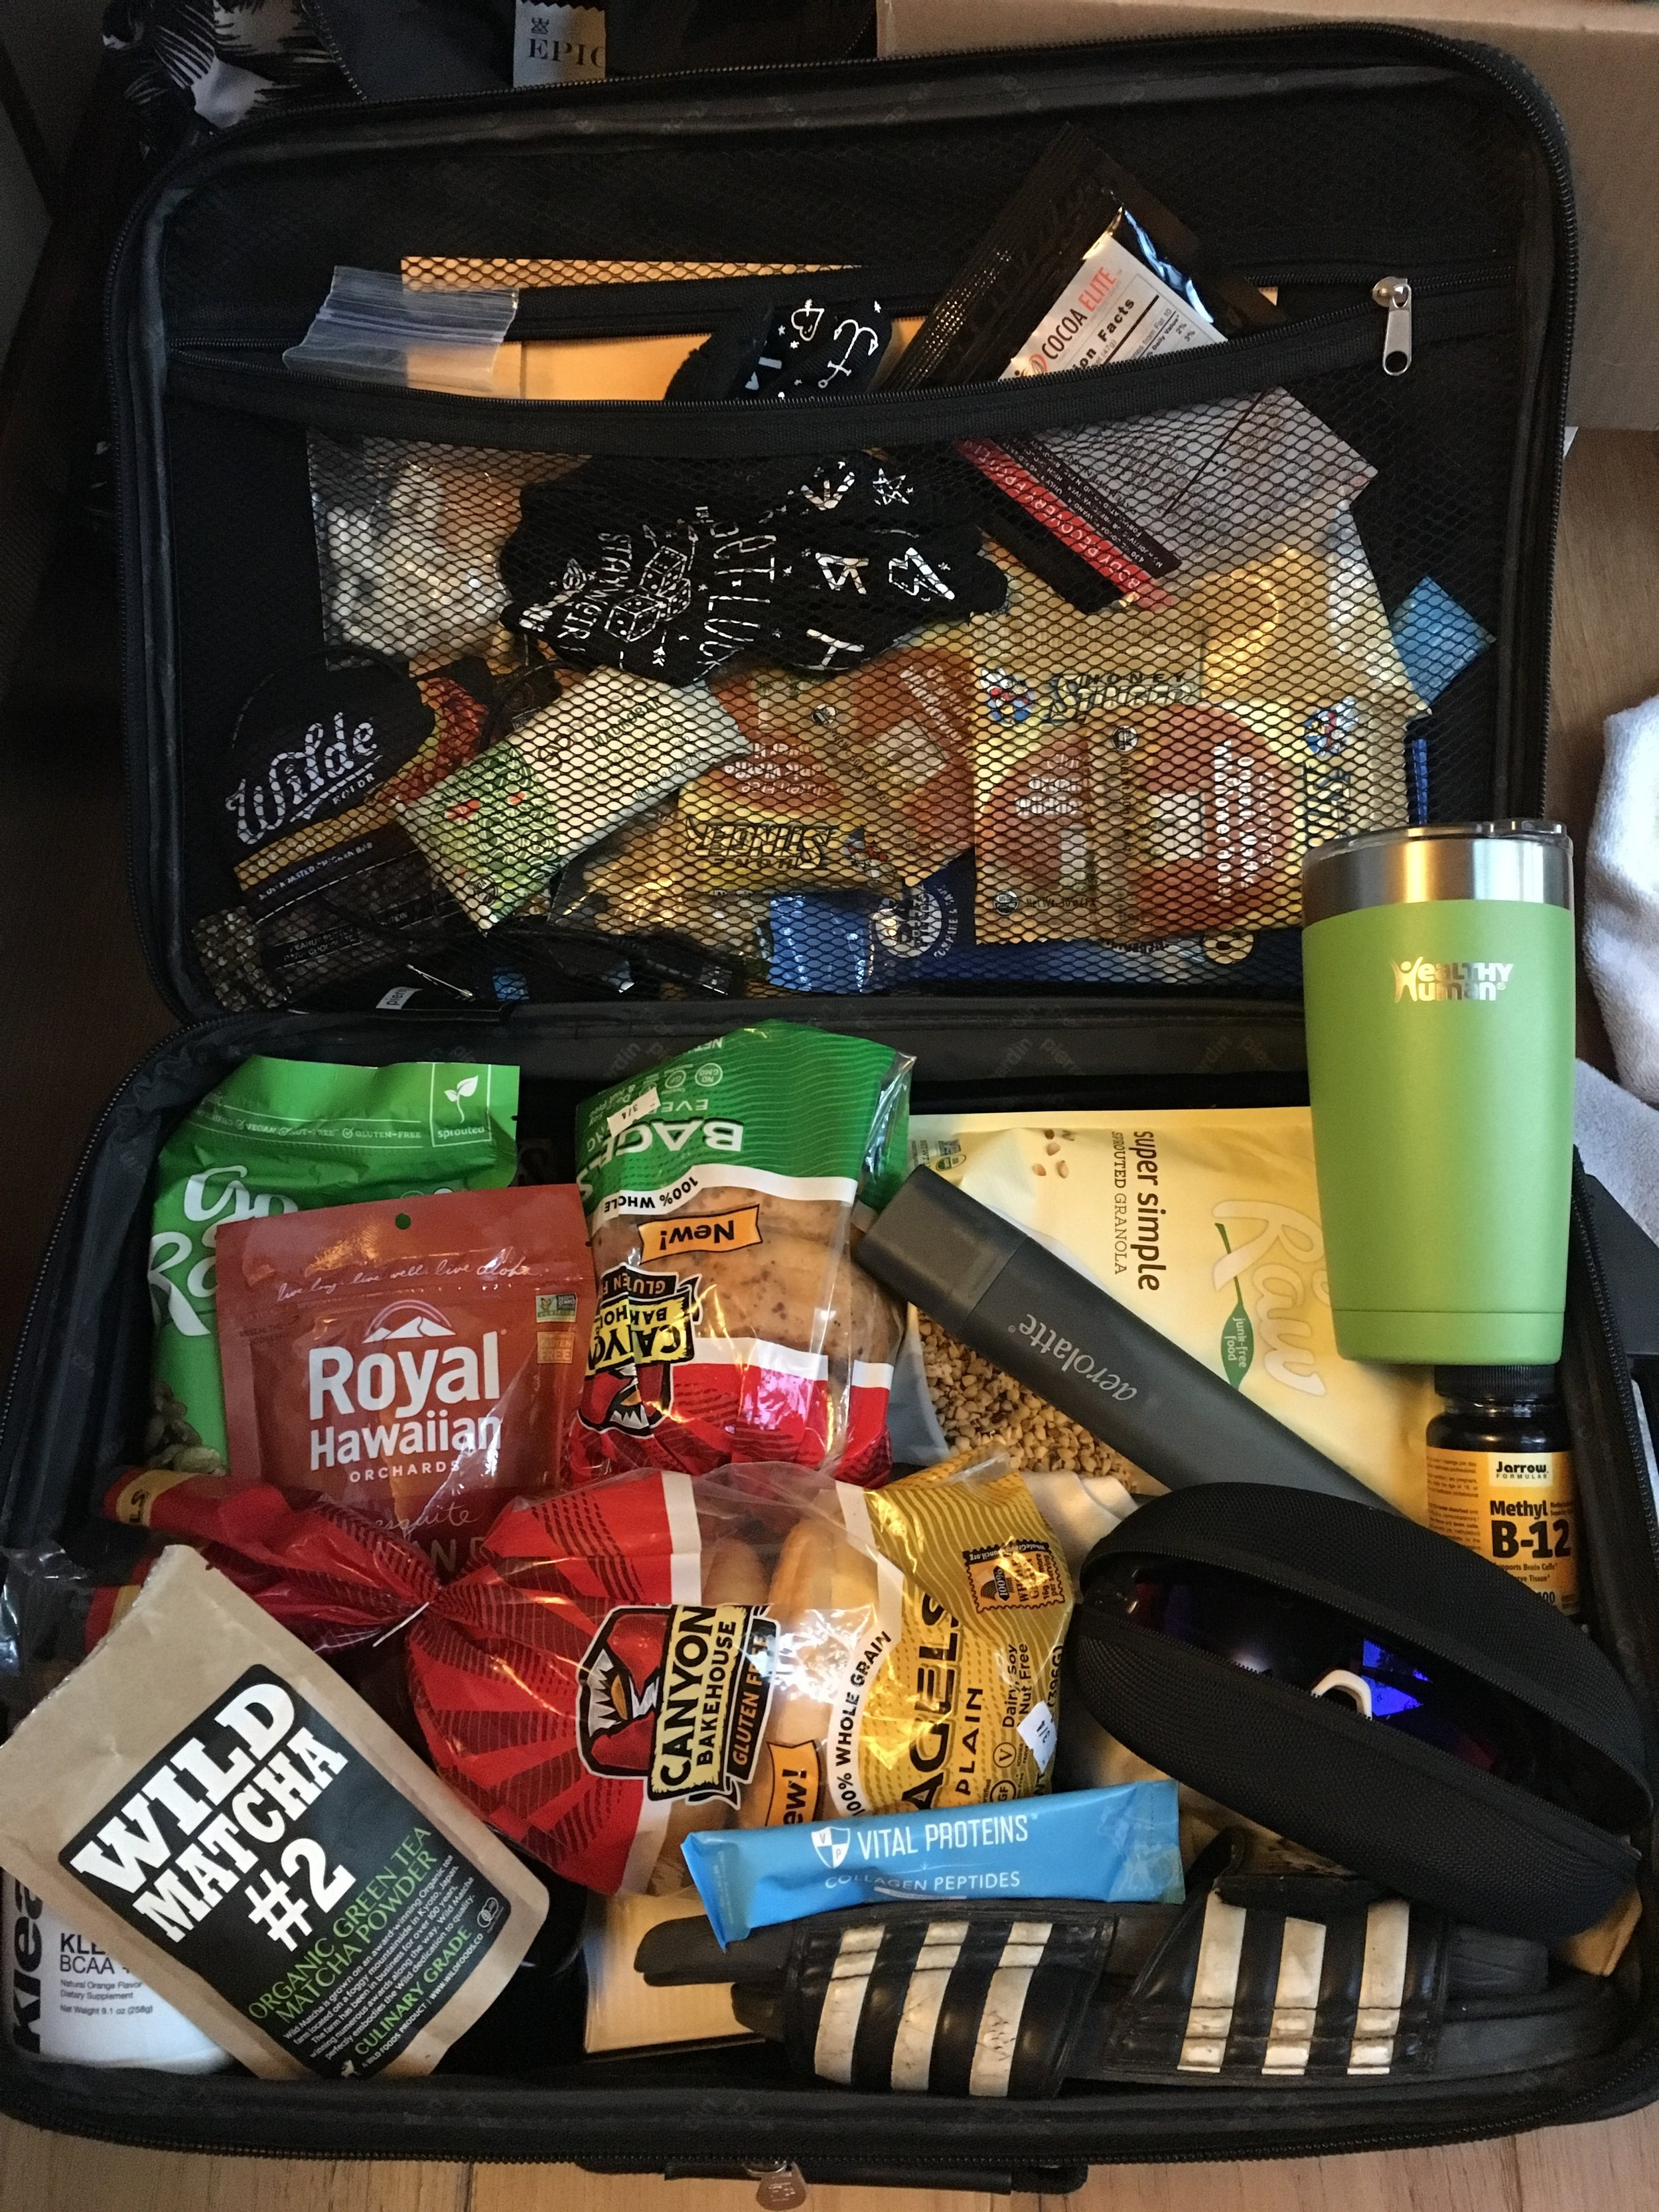 Yes, I packed a suitcase of my own food...